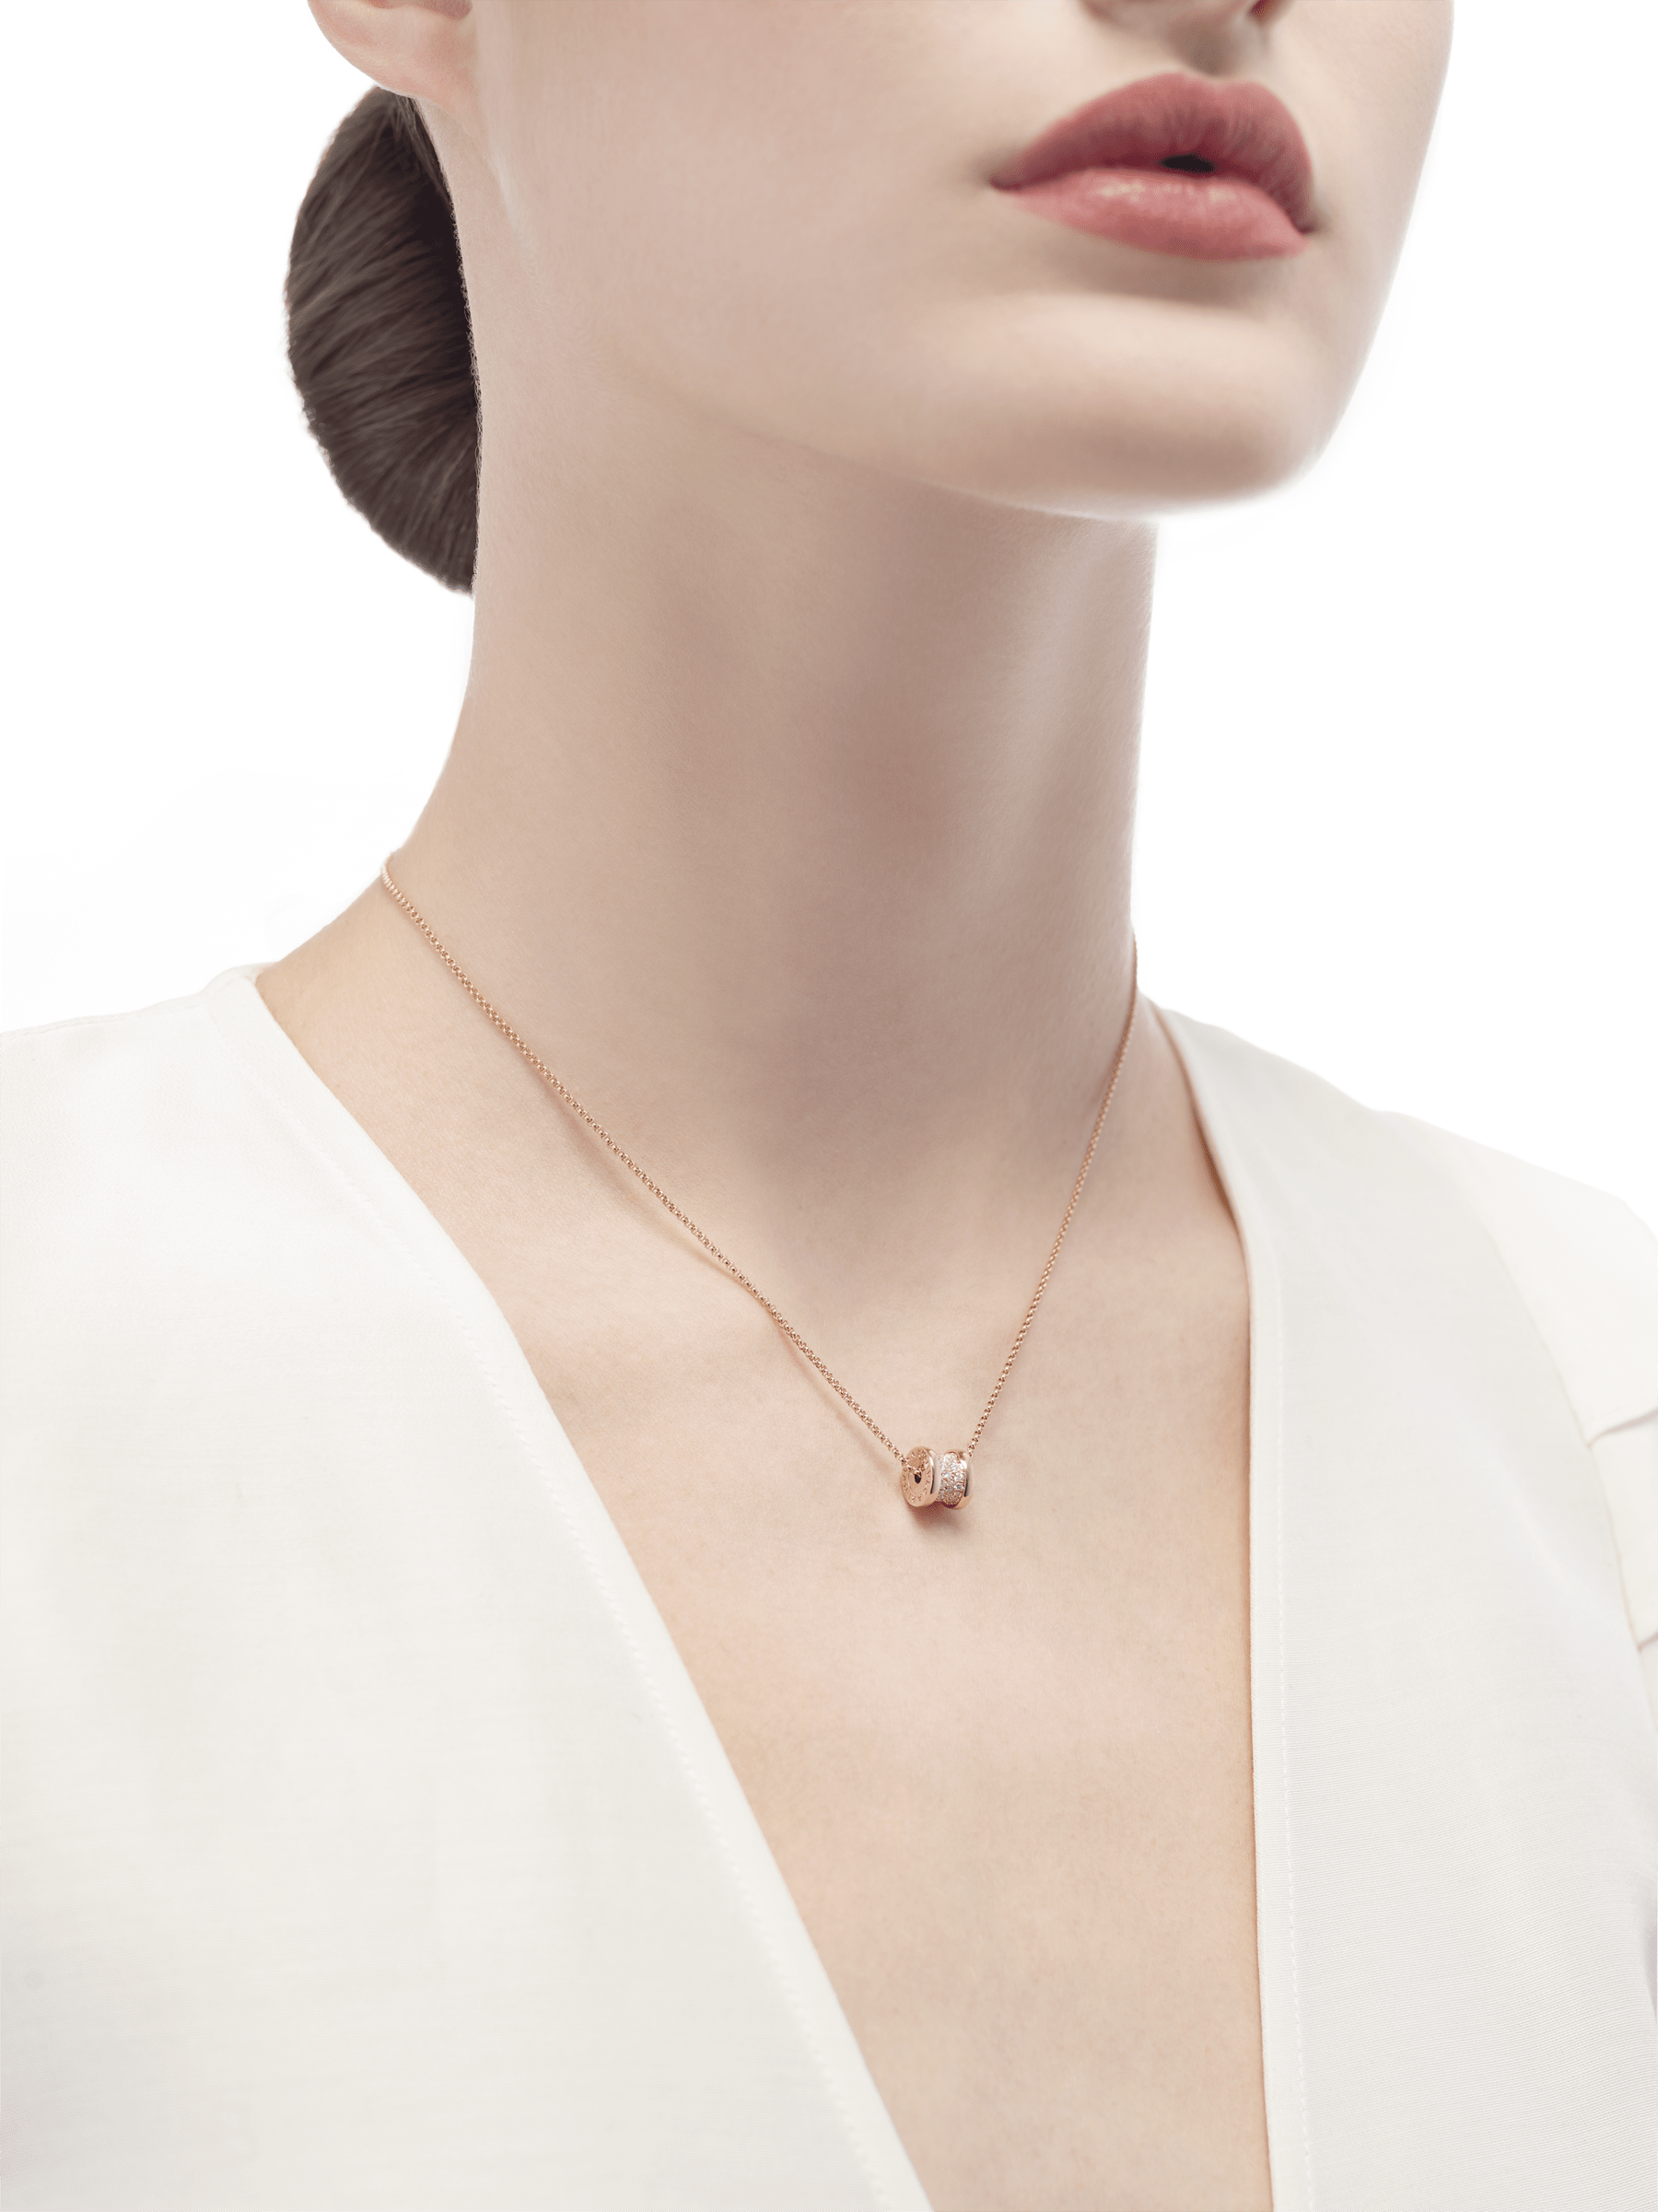 B.zero1 rose gold necklace with pavé diamonds. 351116 image 4